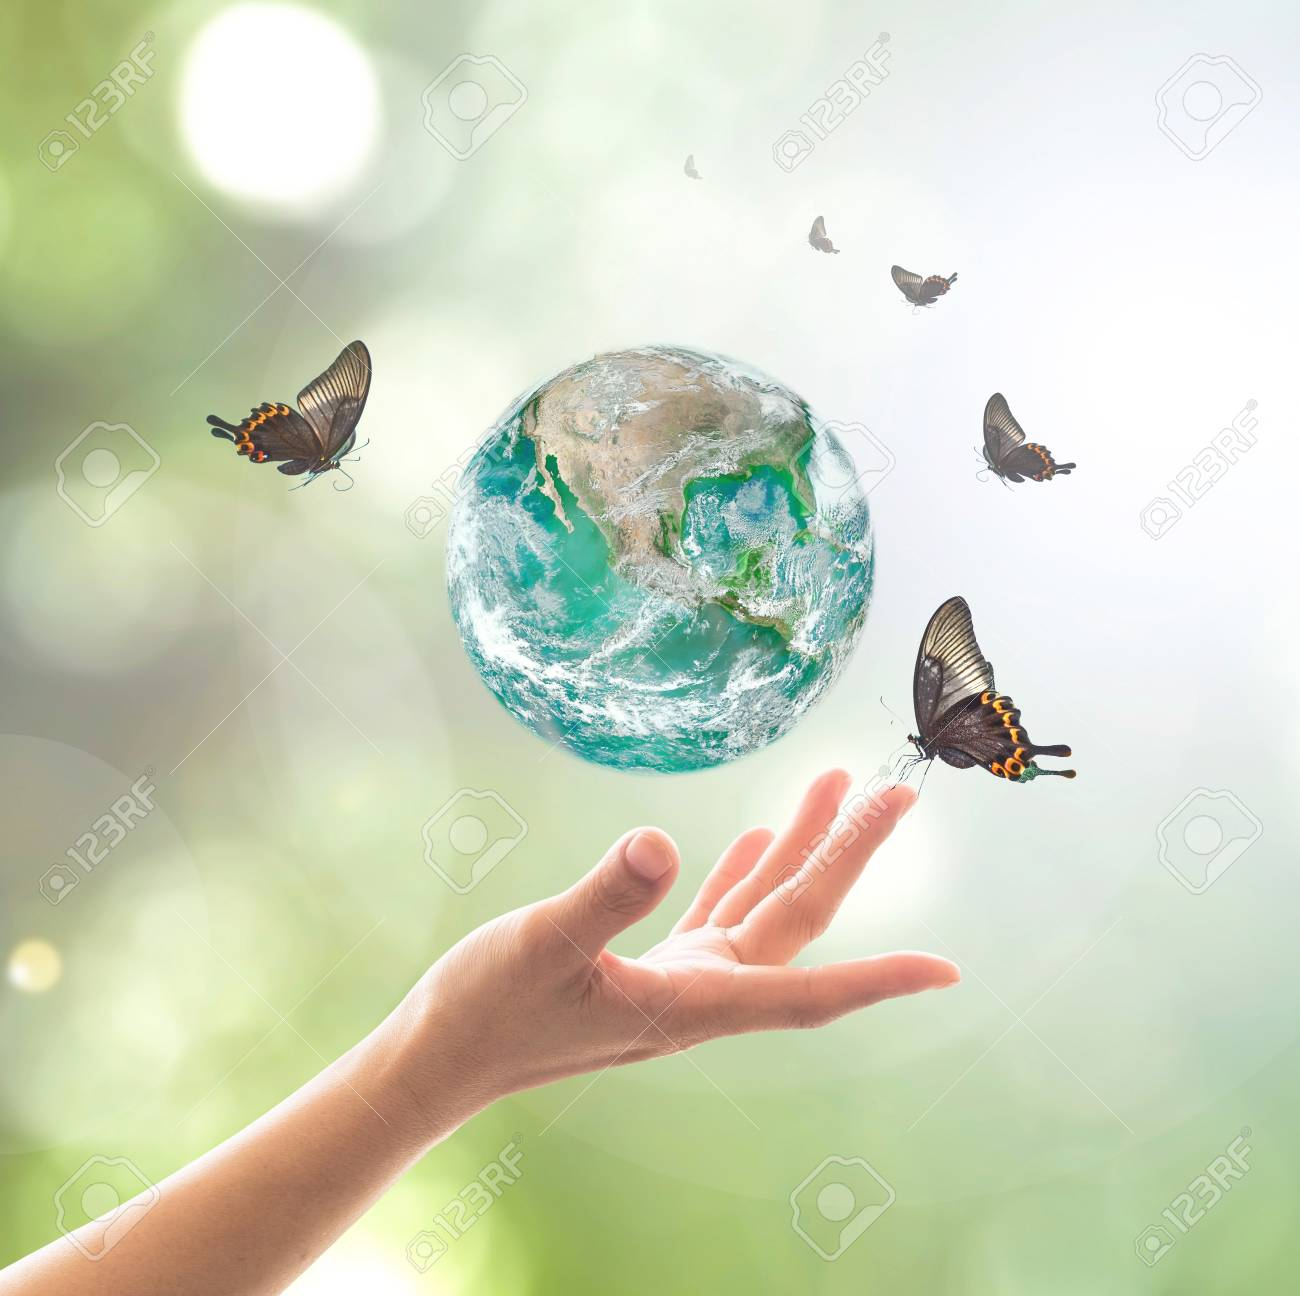 World environment day, sustainable ecology and environmental friendly concept with green earth planet on volunteer's woman hands. - 121249360